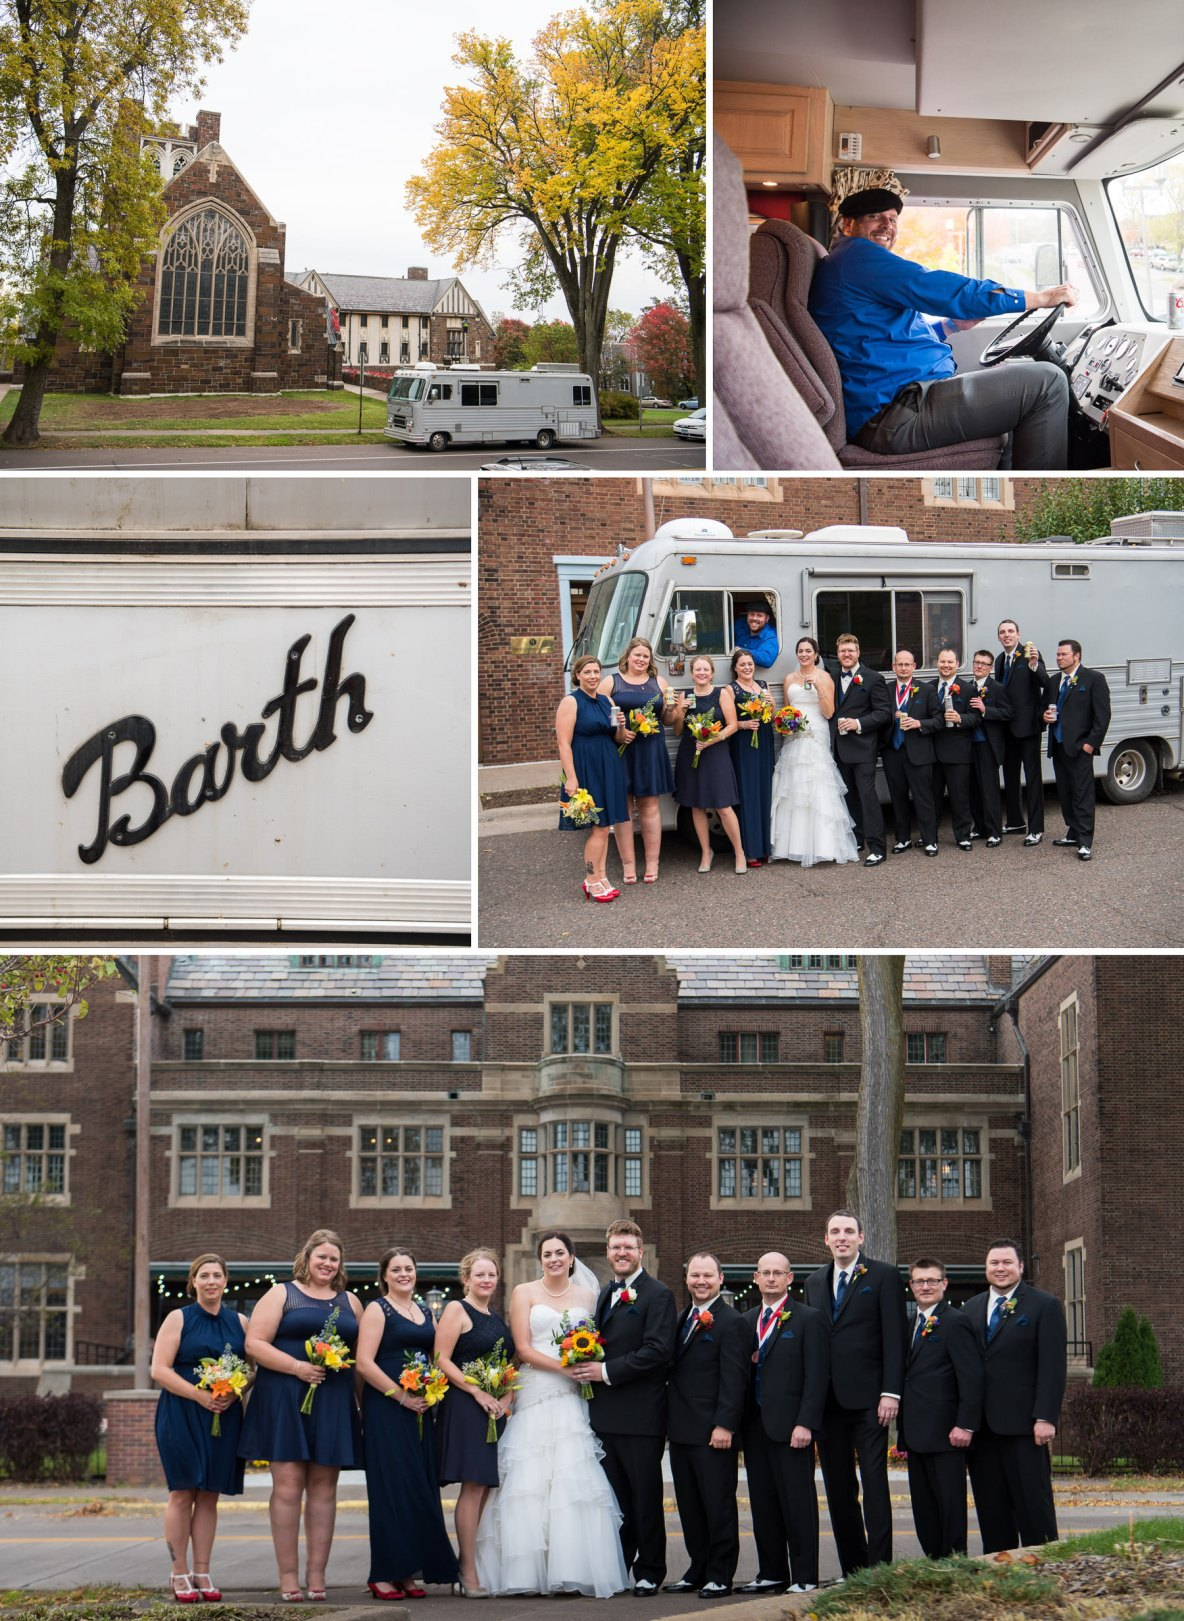 Wedding party in front of picturesque building and old school RV.